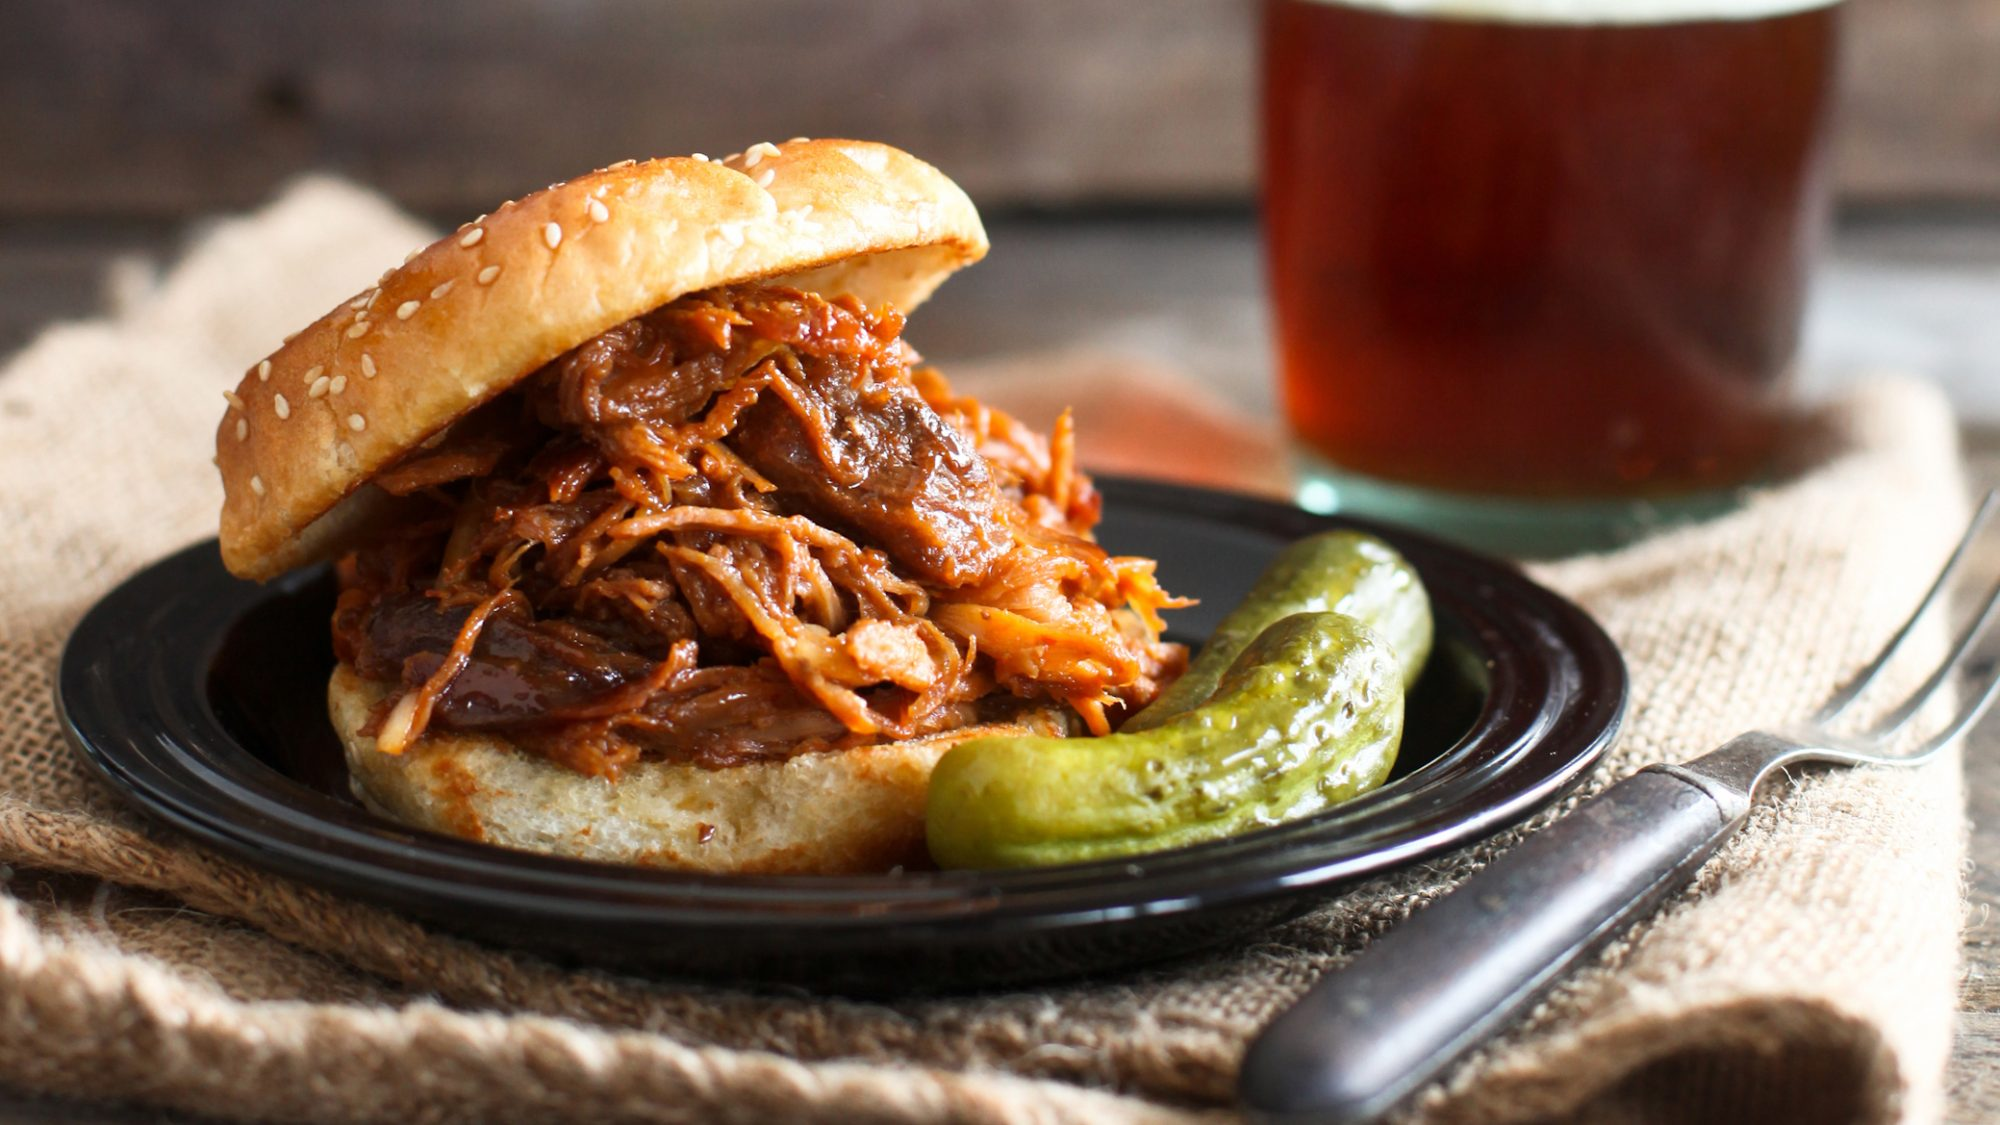 7 Easy Game Day Recipes You Can Make in a Slow Cooker